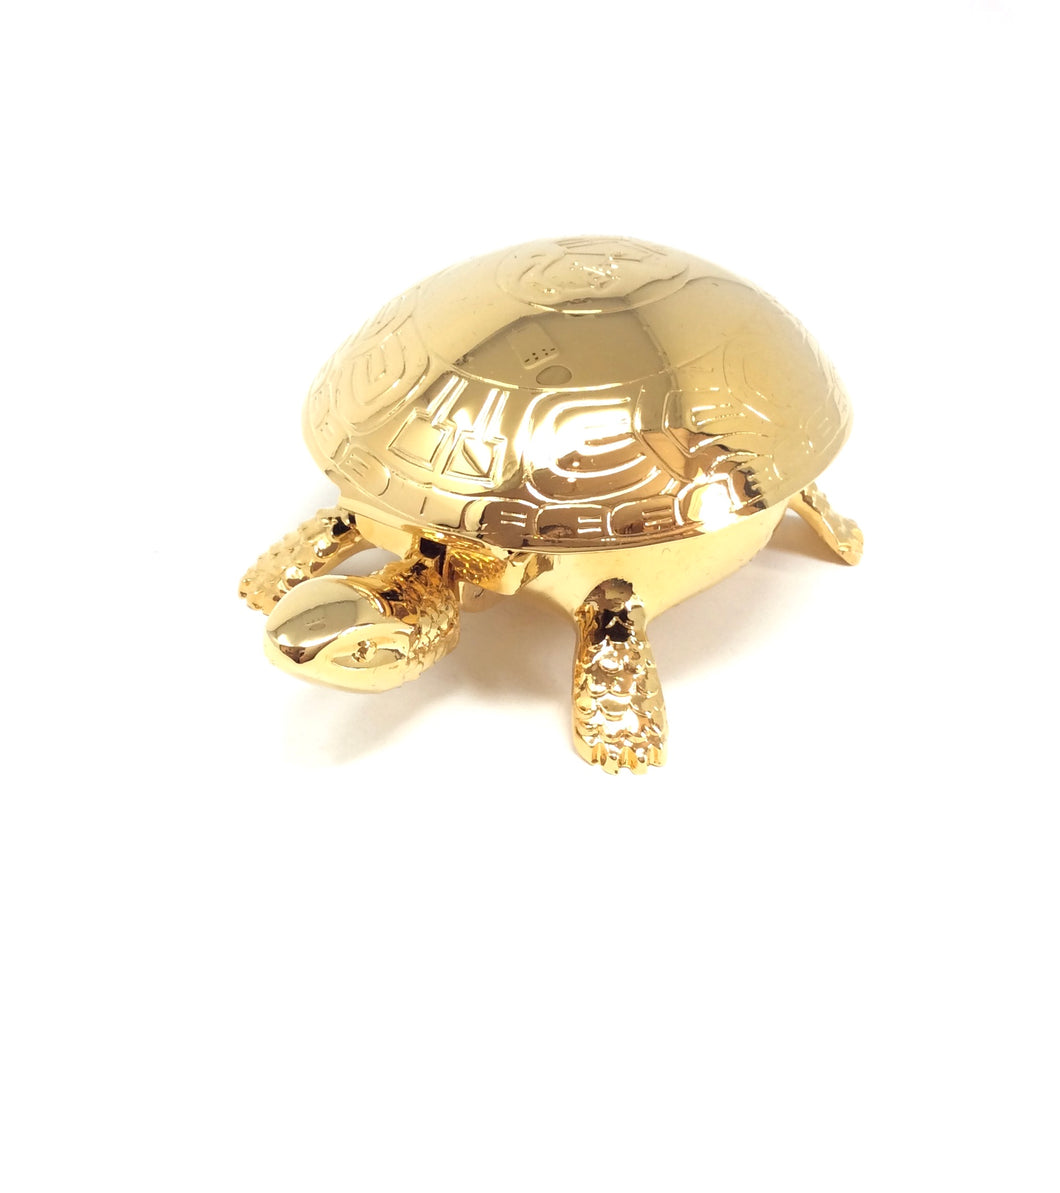 23k Gold Plated Turtle Paperweight and Bell